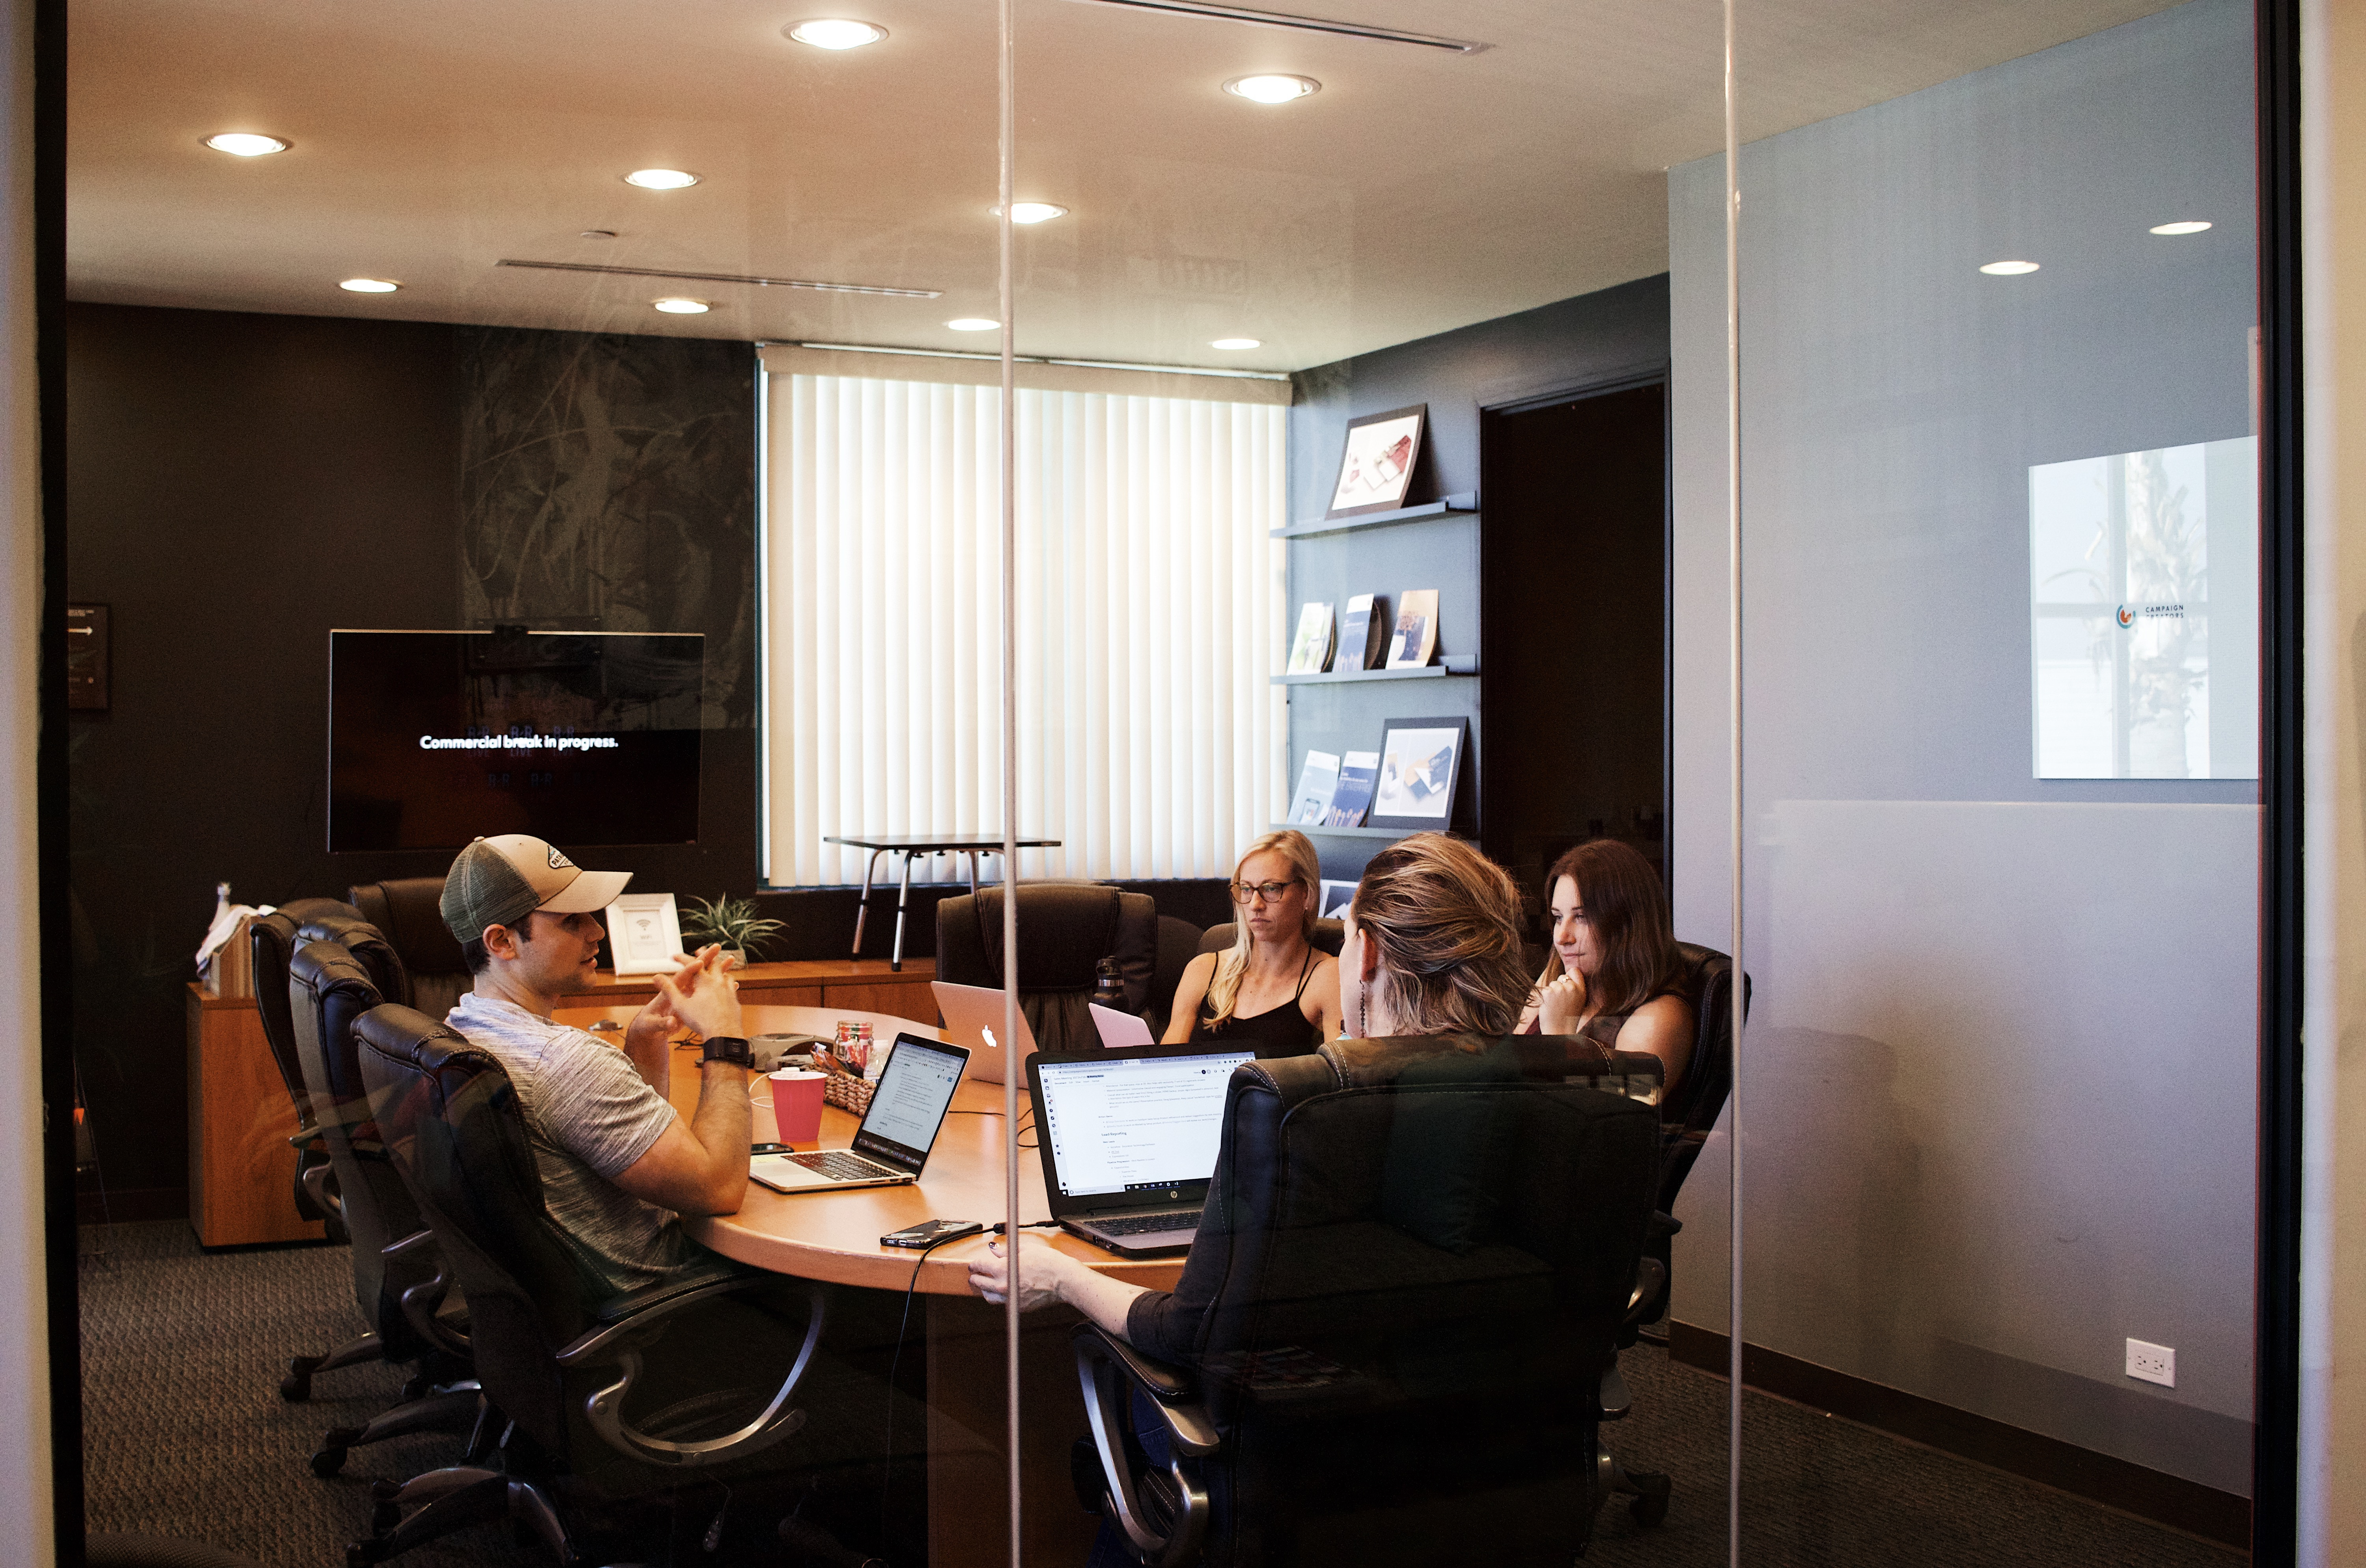 workers in a conference room